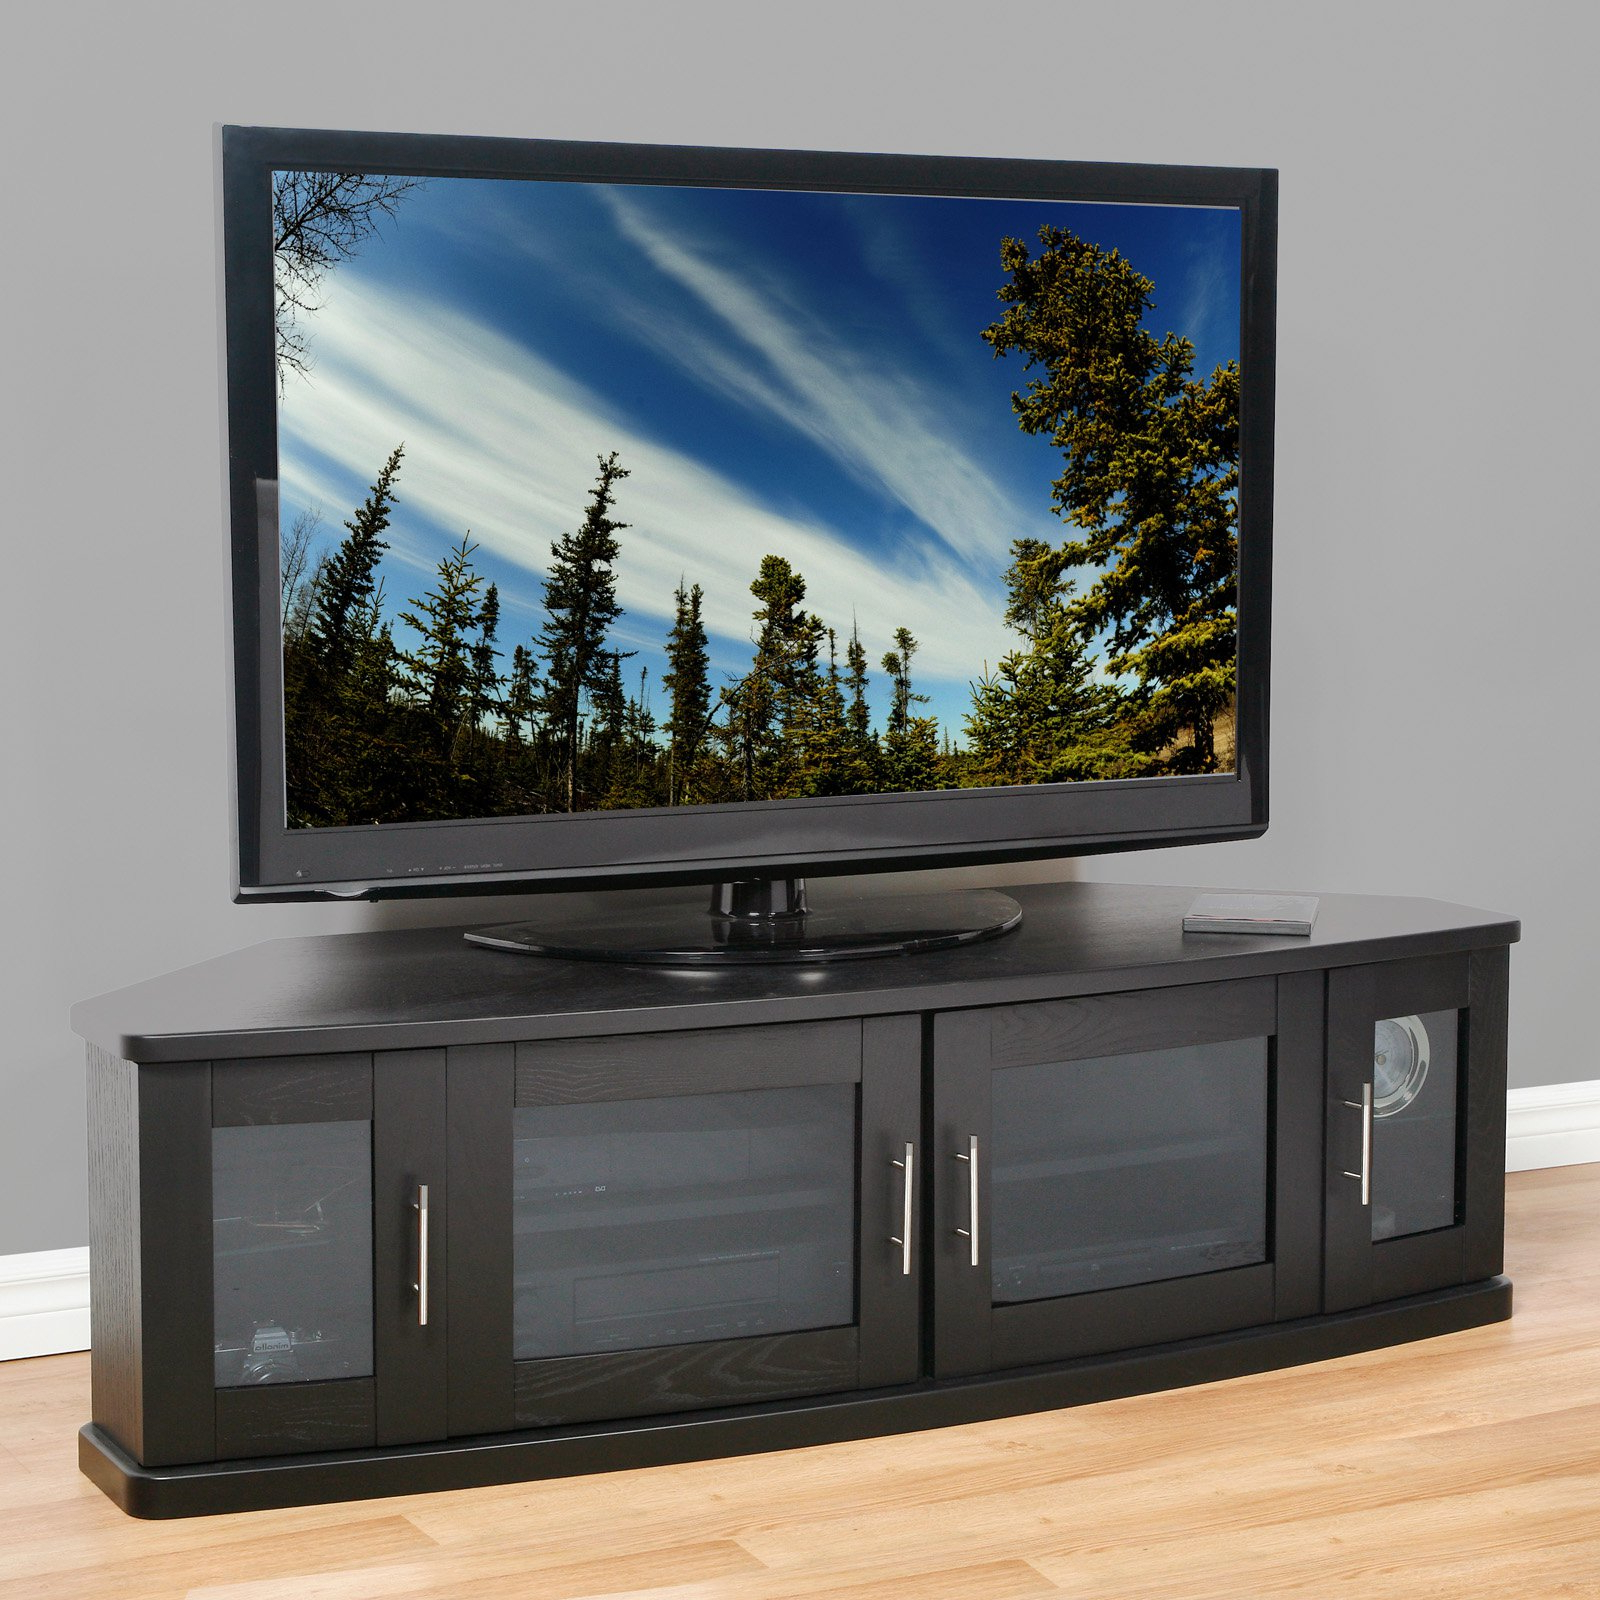 Well Known Plateau Newport 62 Inch Corner Tv Stand In Black – Walmart With Wooden Tv Cabinets With Glass Doors (View 18 of 20)